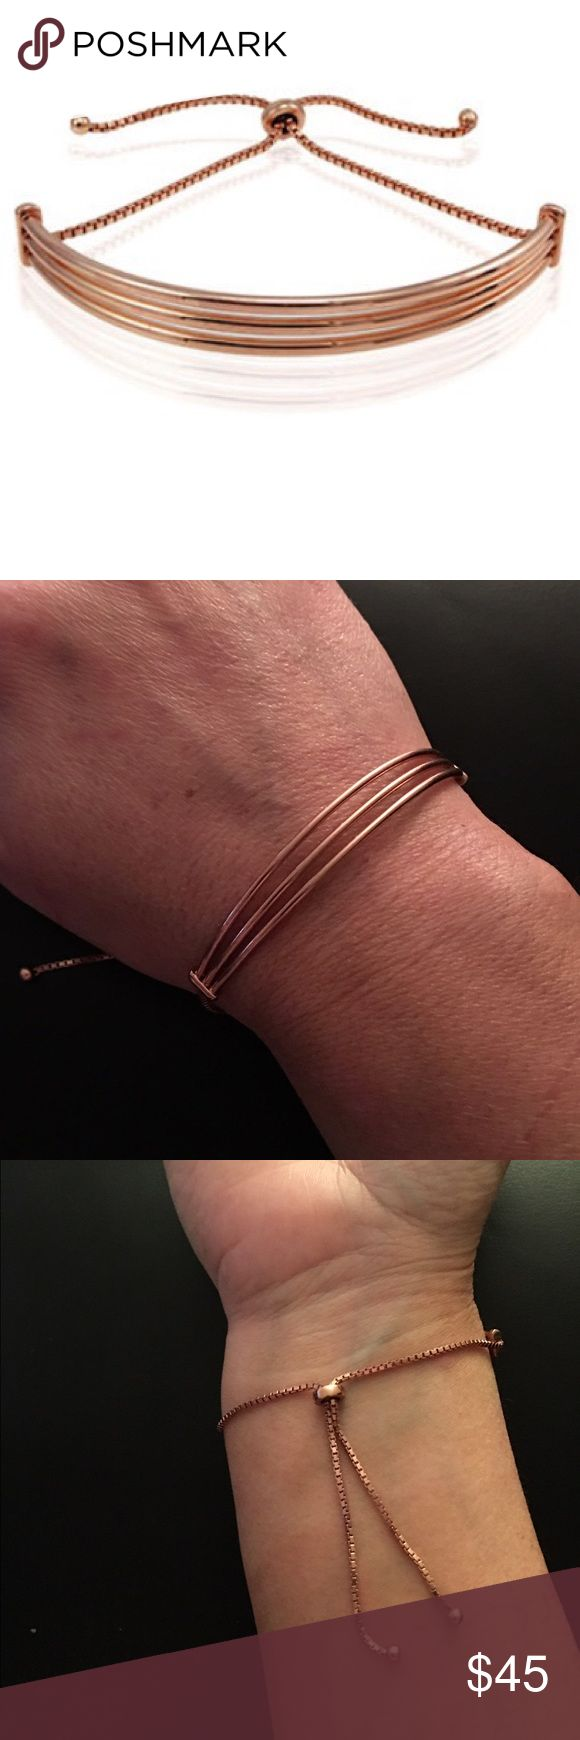 """Rose gold plated curved bar bracelet Sleek rose gold bracelet that adjusts to snd wrist. Length up to 10"""" due to adjustable nature of bracelet. Very fun and stylish. Great as layering piece. Bracelet is brand new, never worn and comes in velvet pouch. No trades. Reasonable offers only please. Bundle for further discounts. Ships in 24hrs. Gift with purchase Lord & Taylor Jewelry"""